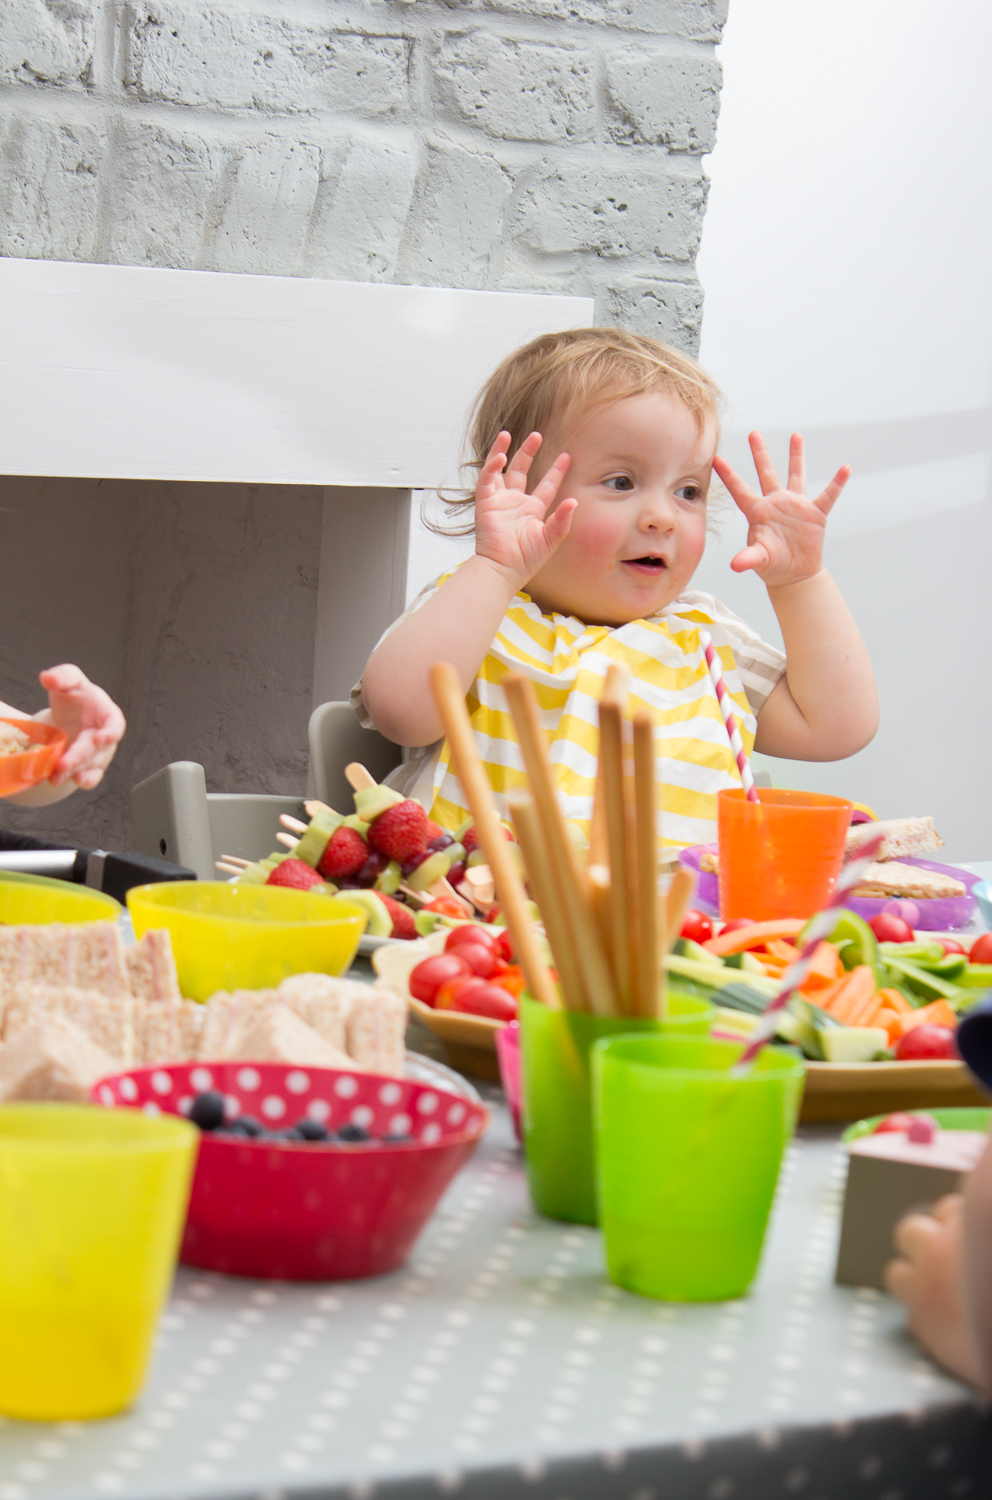 A little girl sits at a table filled with party food showing ten fingers in the air